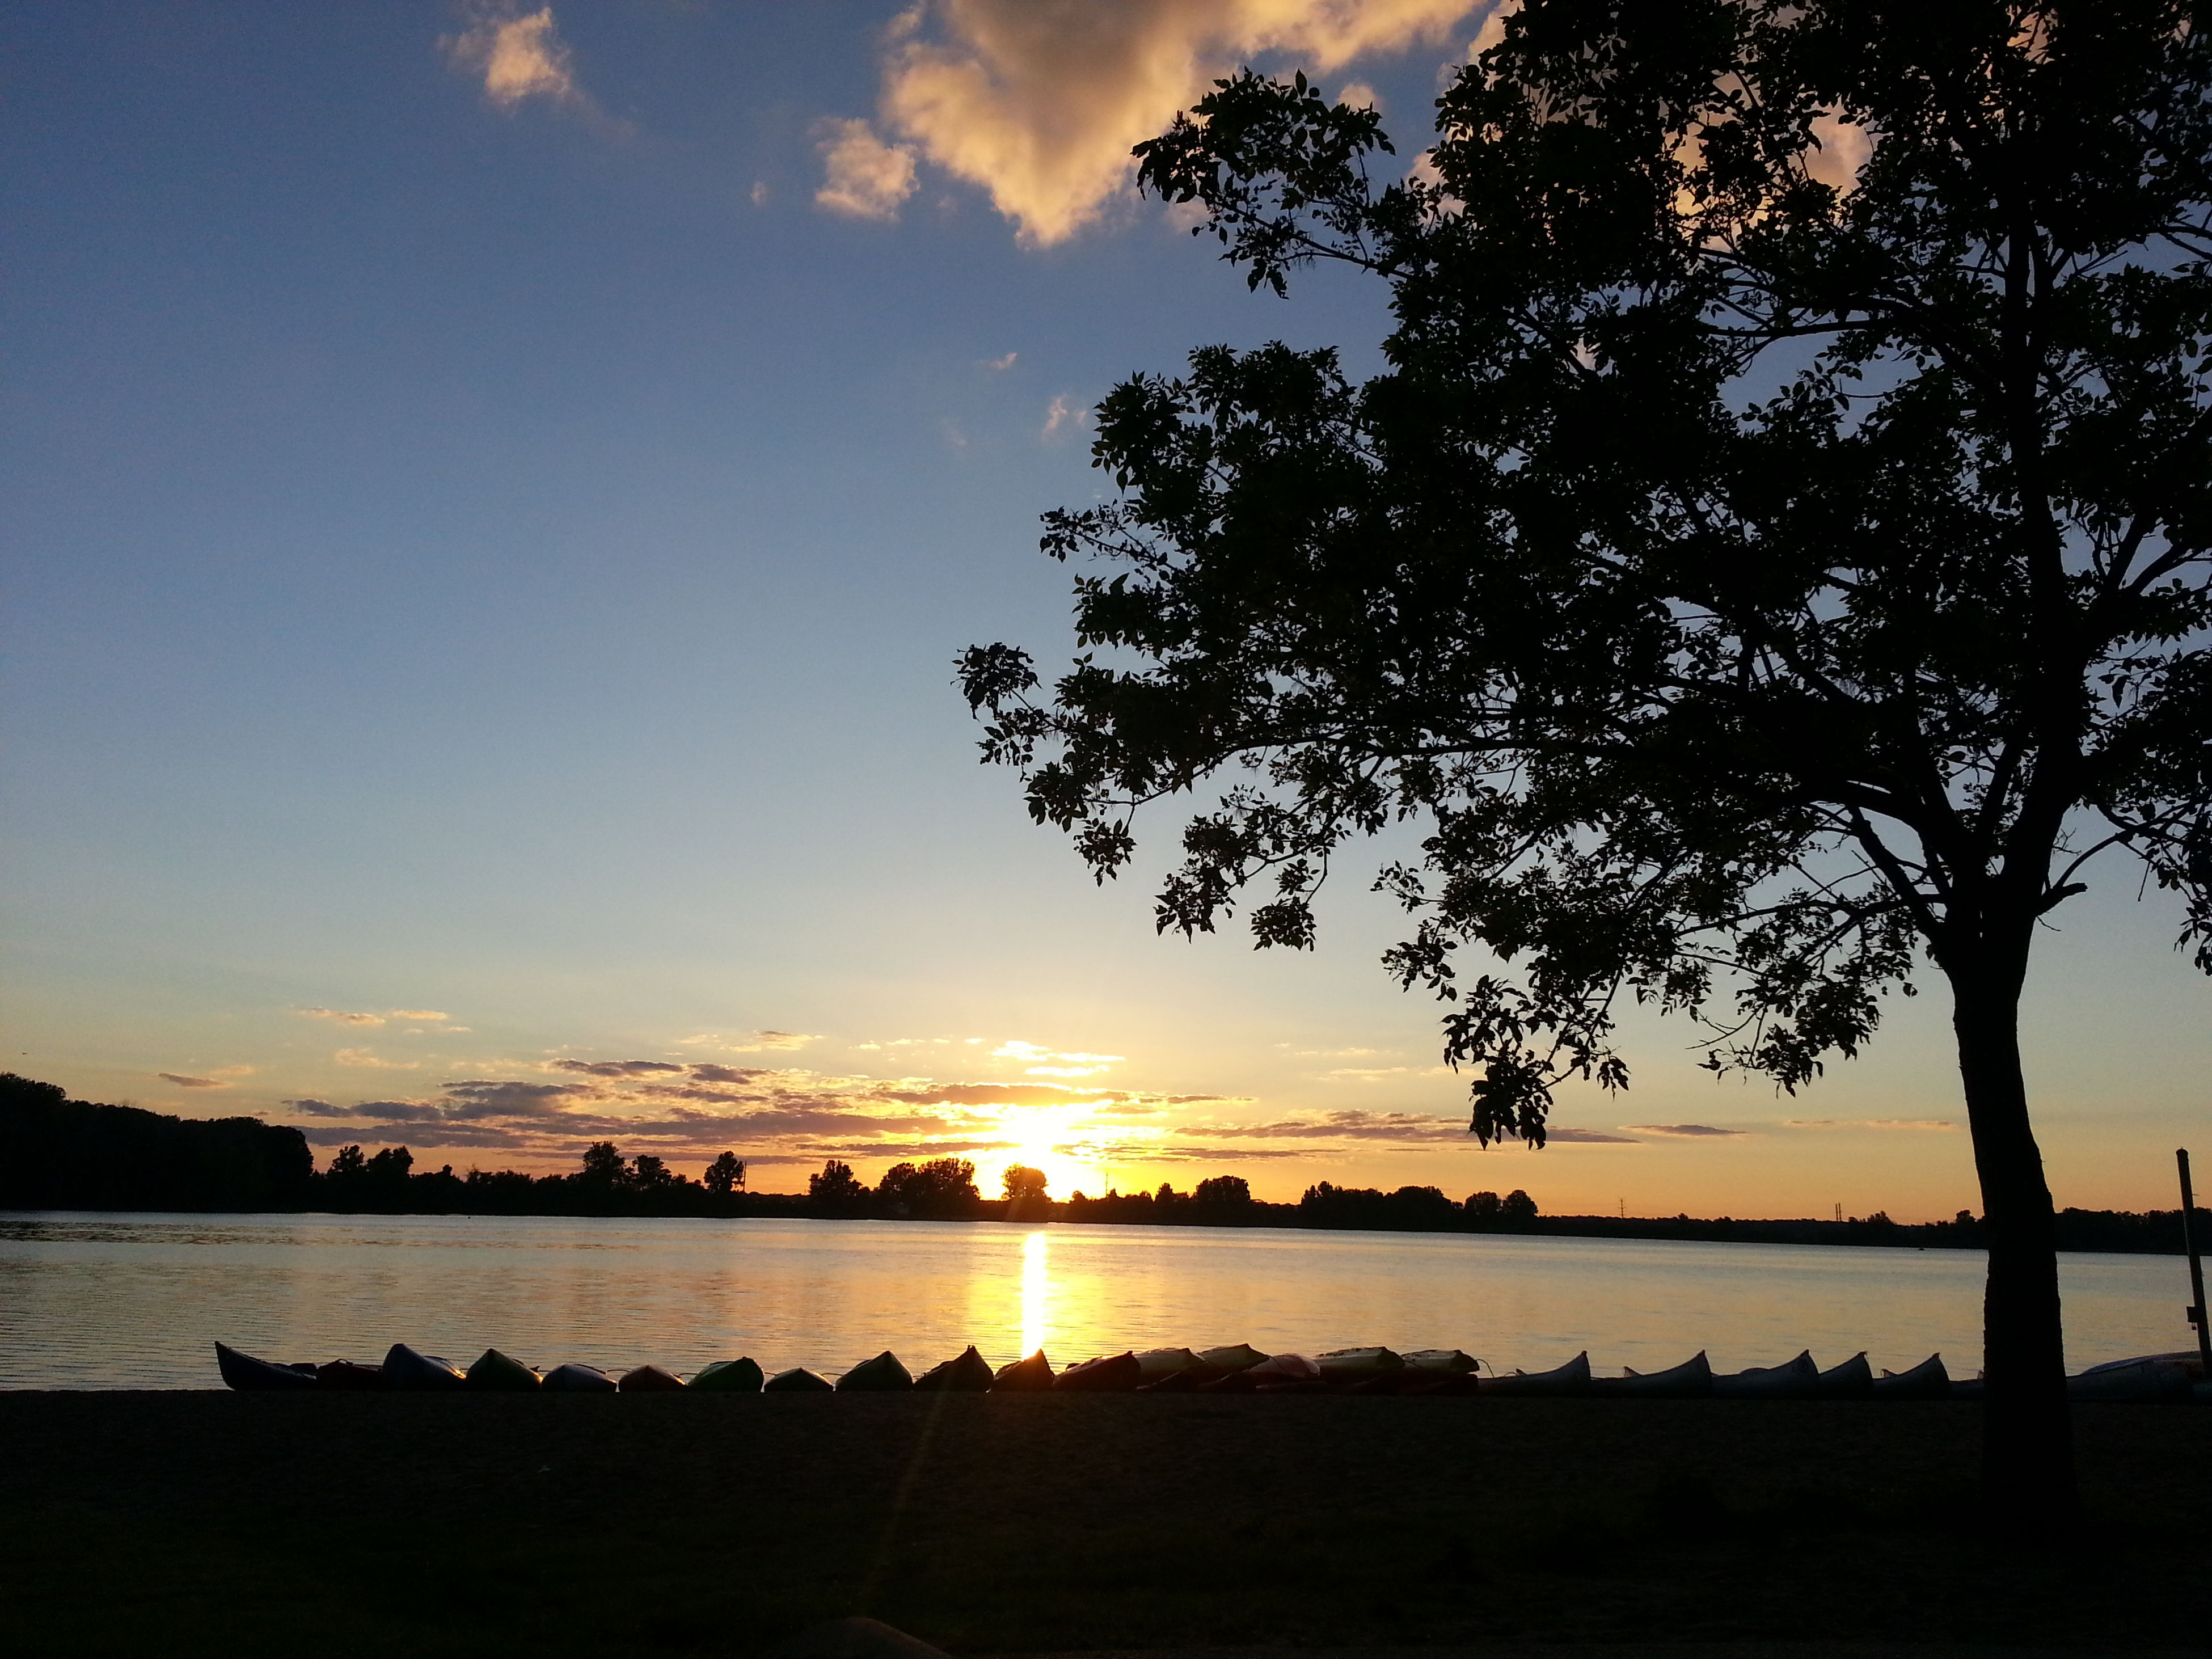 sunset, water, tranquil scene, tranquility, scenics, silhouette, tree, beauty in nature, sky, sun, nature, sea, idyllic, lake, reflection, horizon over water, sunlight, orange color, outdoors, branch